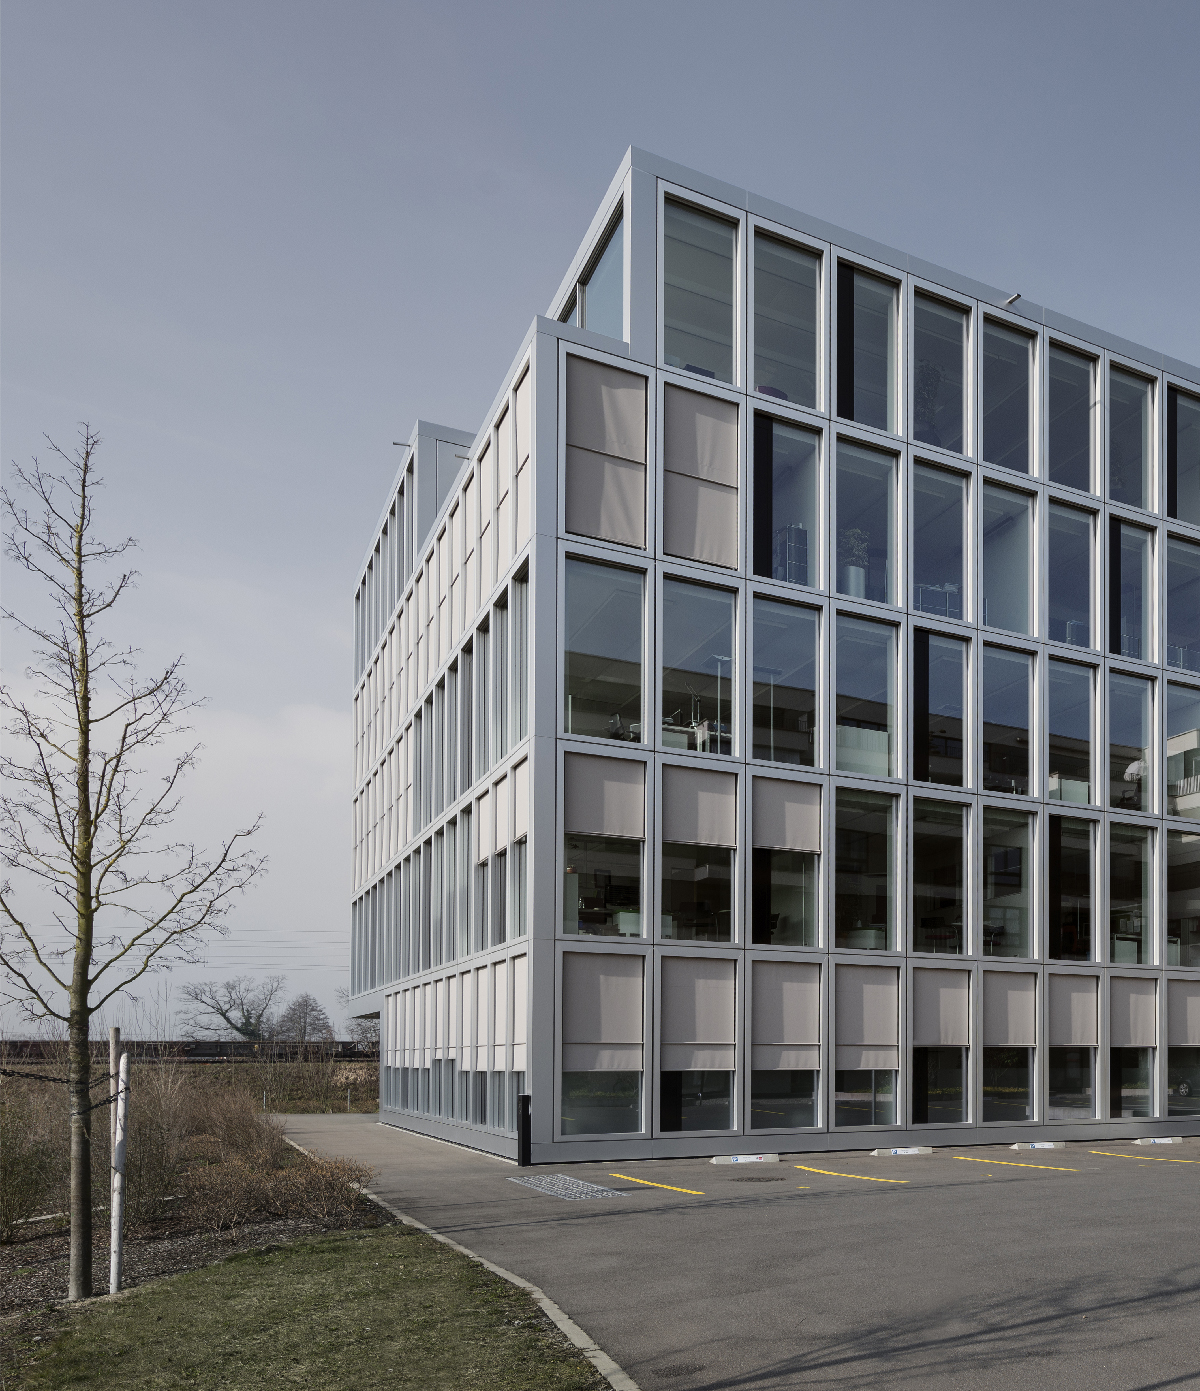 office building facade. On An Iconic Level, The «Kirk Hus» Recalls Bifurcated, Subversive Messages Rem Koolhaas\u0027 Buildings Seem To Speak: One Hand, Glassy Facade Office Building A